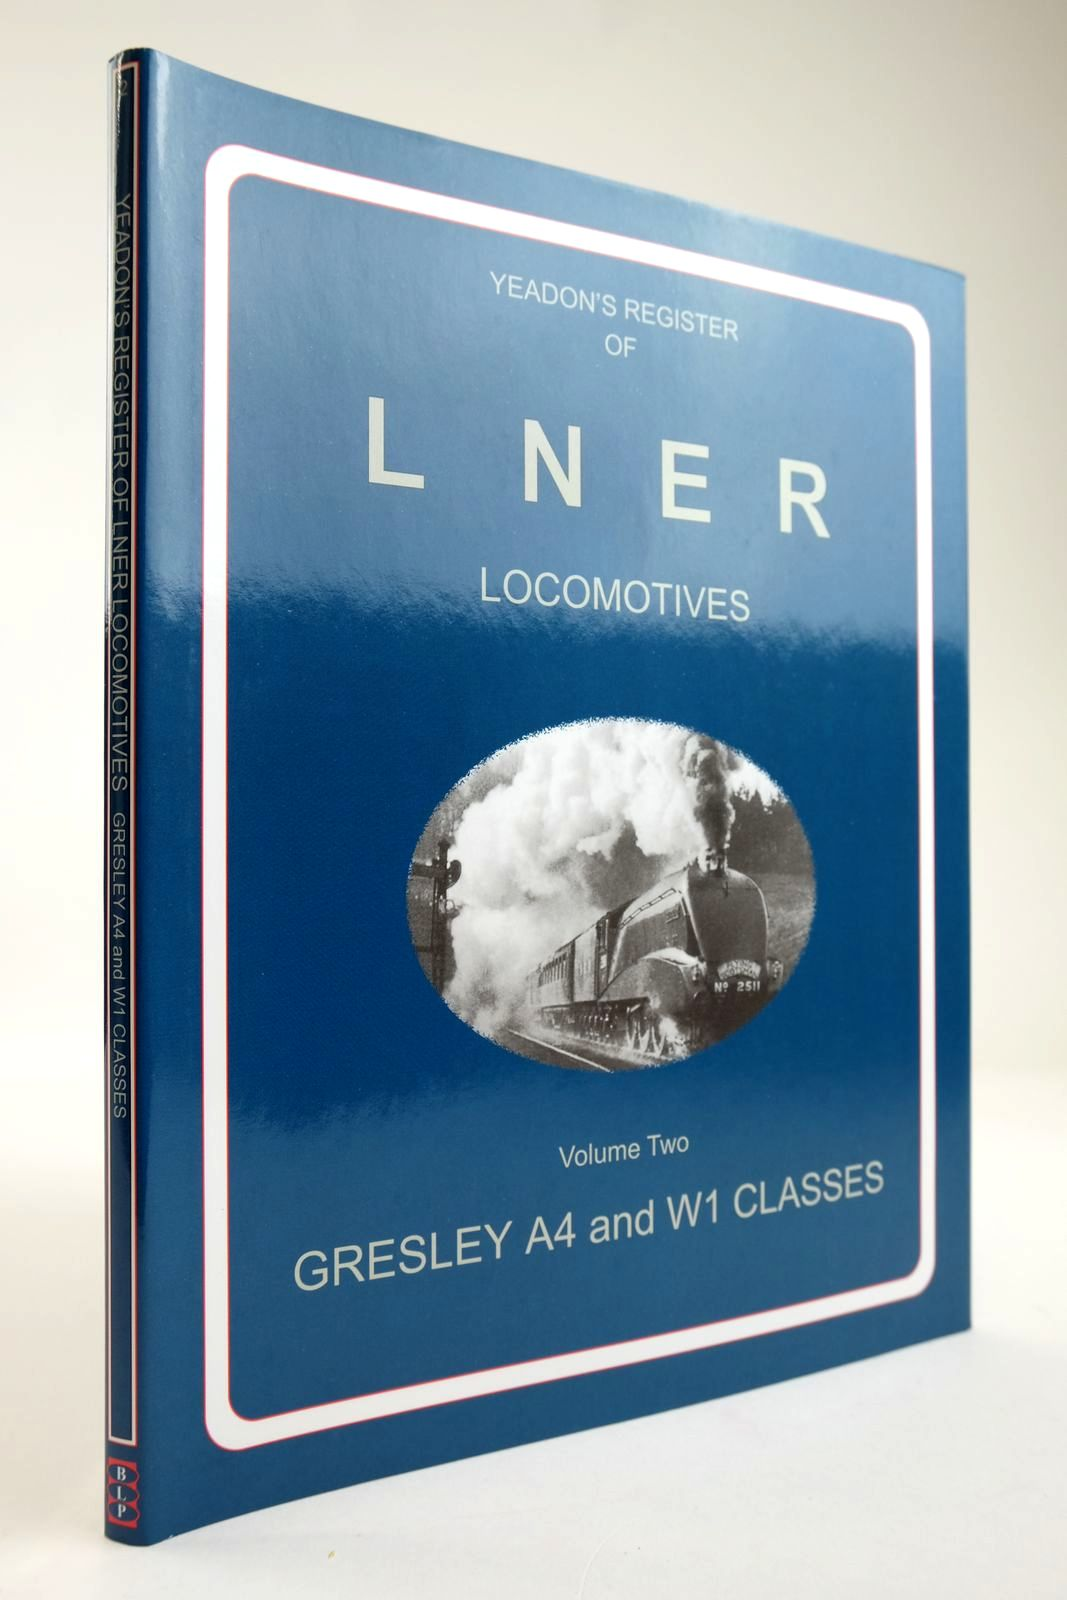 Photo of YEADON'S REGISTER OF LNER LOCOMOTIVES VOLUME TWO written by Yeadon, W.B. published by Booklaw Railbus (STOCK CODE: 2133581)  for sale by Stella & Rose's Books